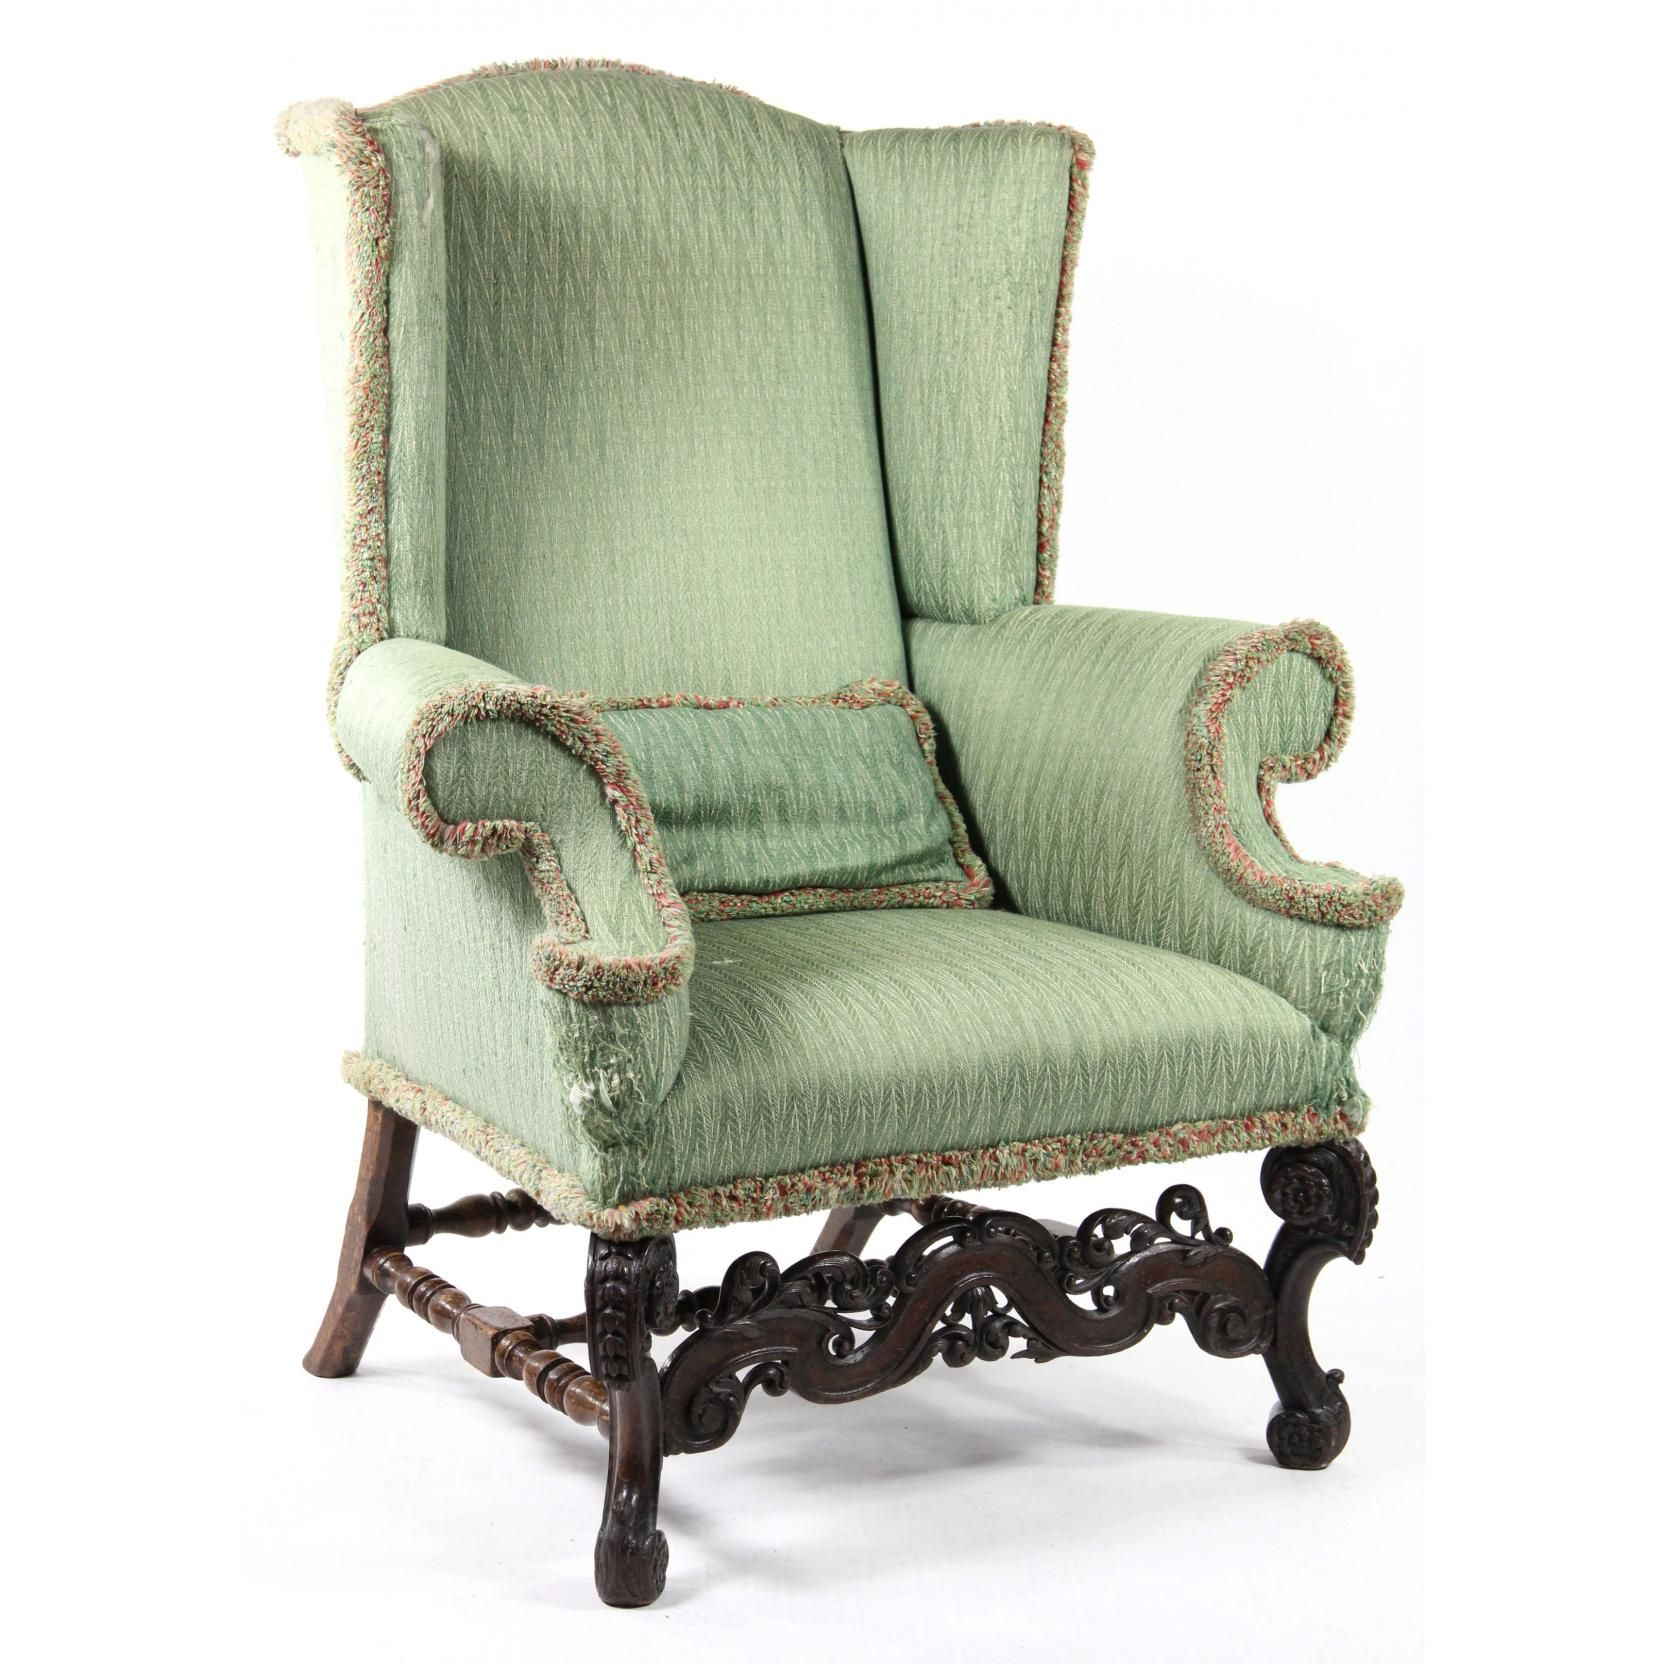 Restoration Style Wing Chair Sold $800